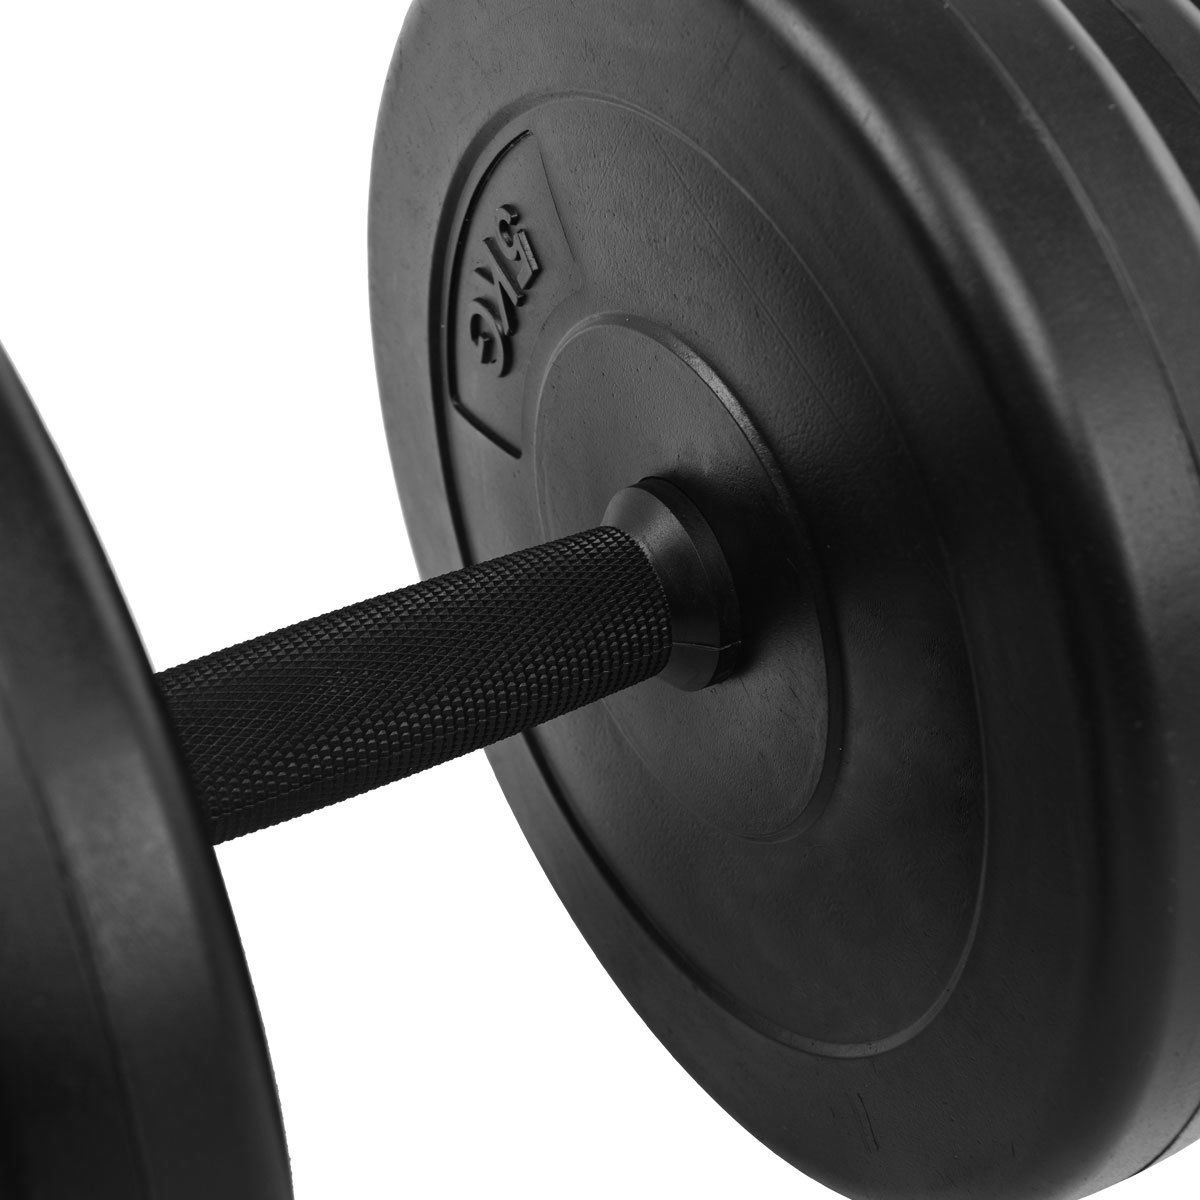 Weight Set 44 LB Dumbbell Adjustable Cap Gym Barbell Plates Body Workout Good